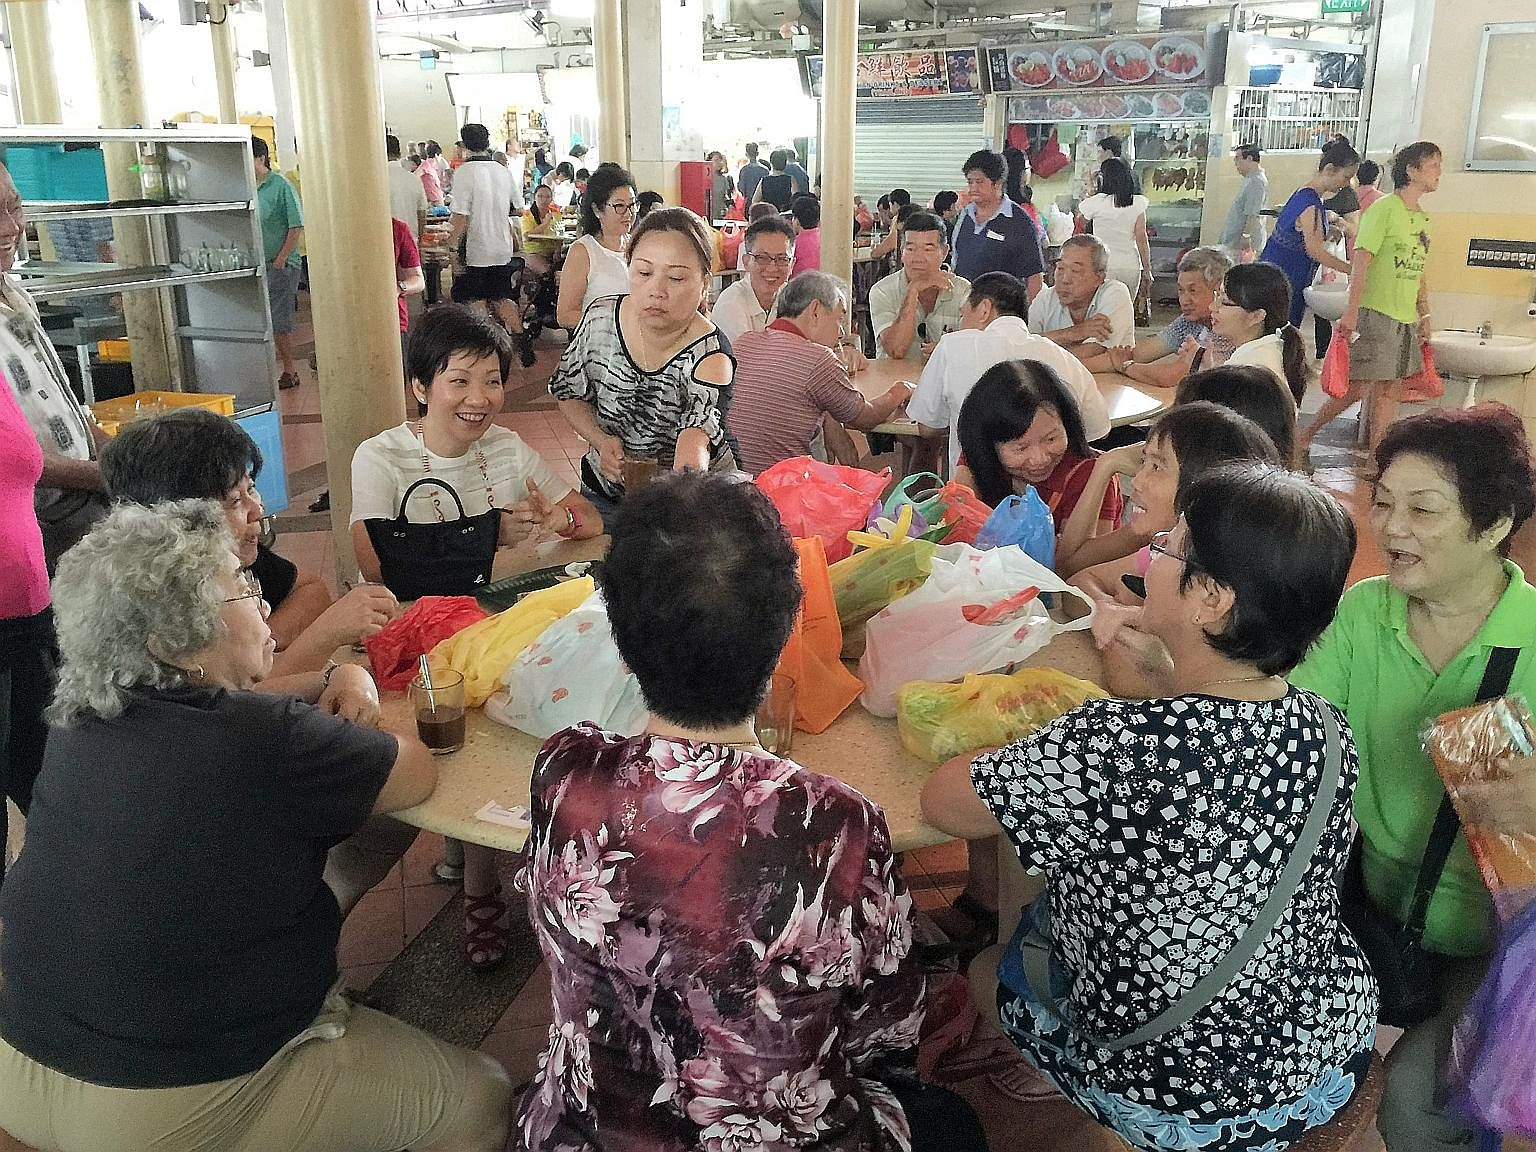 Minister for Culture, Community and Youth Grace Fu (third from left) chatting with residents at Yuhua Market and Hawker Centre at Jurong East Avenue 1. When sharing a table with residents, one finds out how the others are doing, such as how many gran